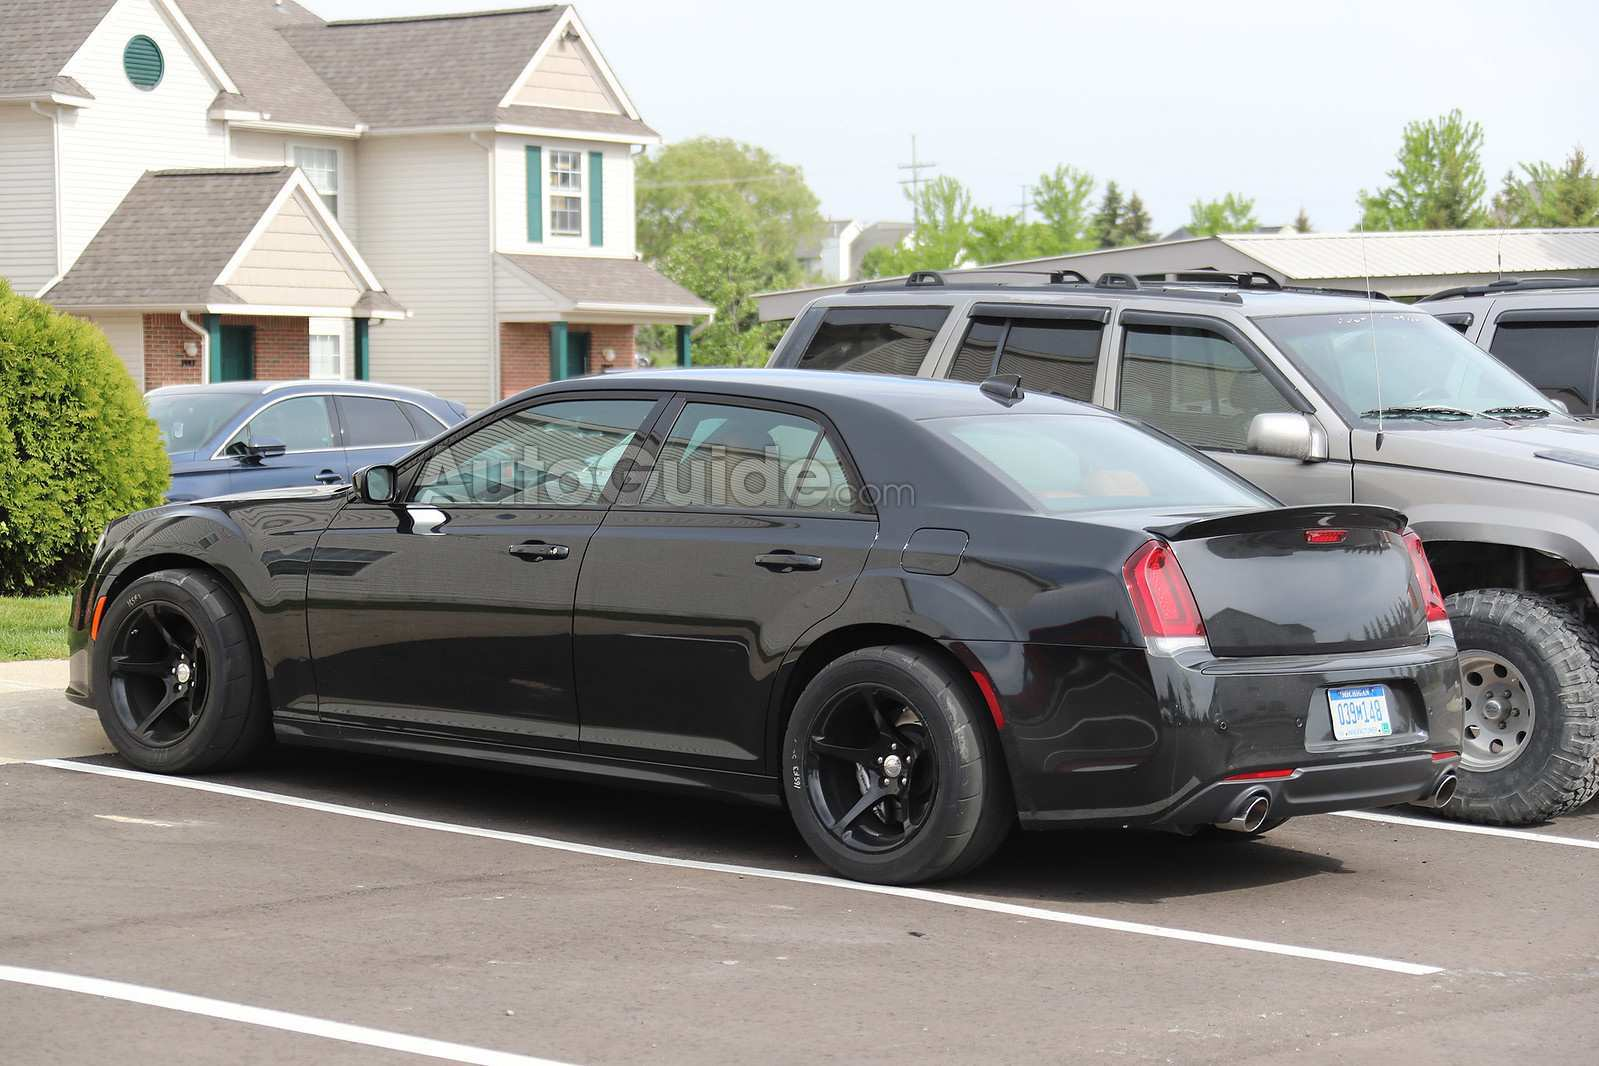 75 A 2019 Chrysler 300 Srt8 Research New